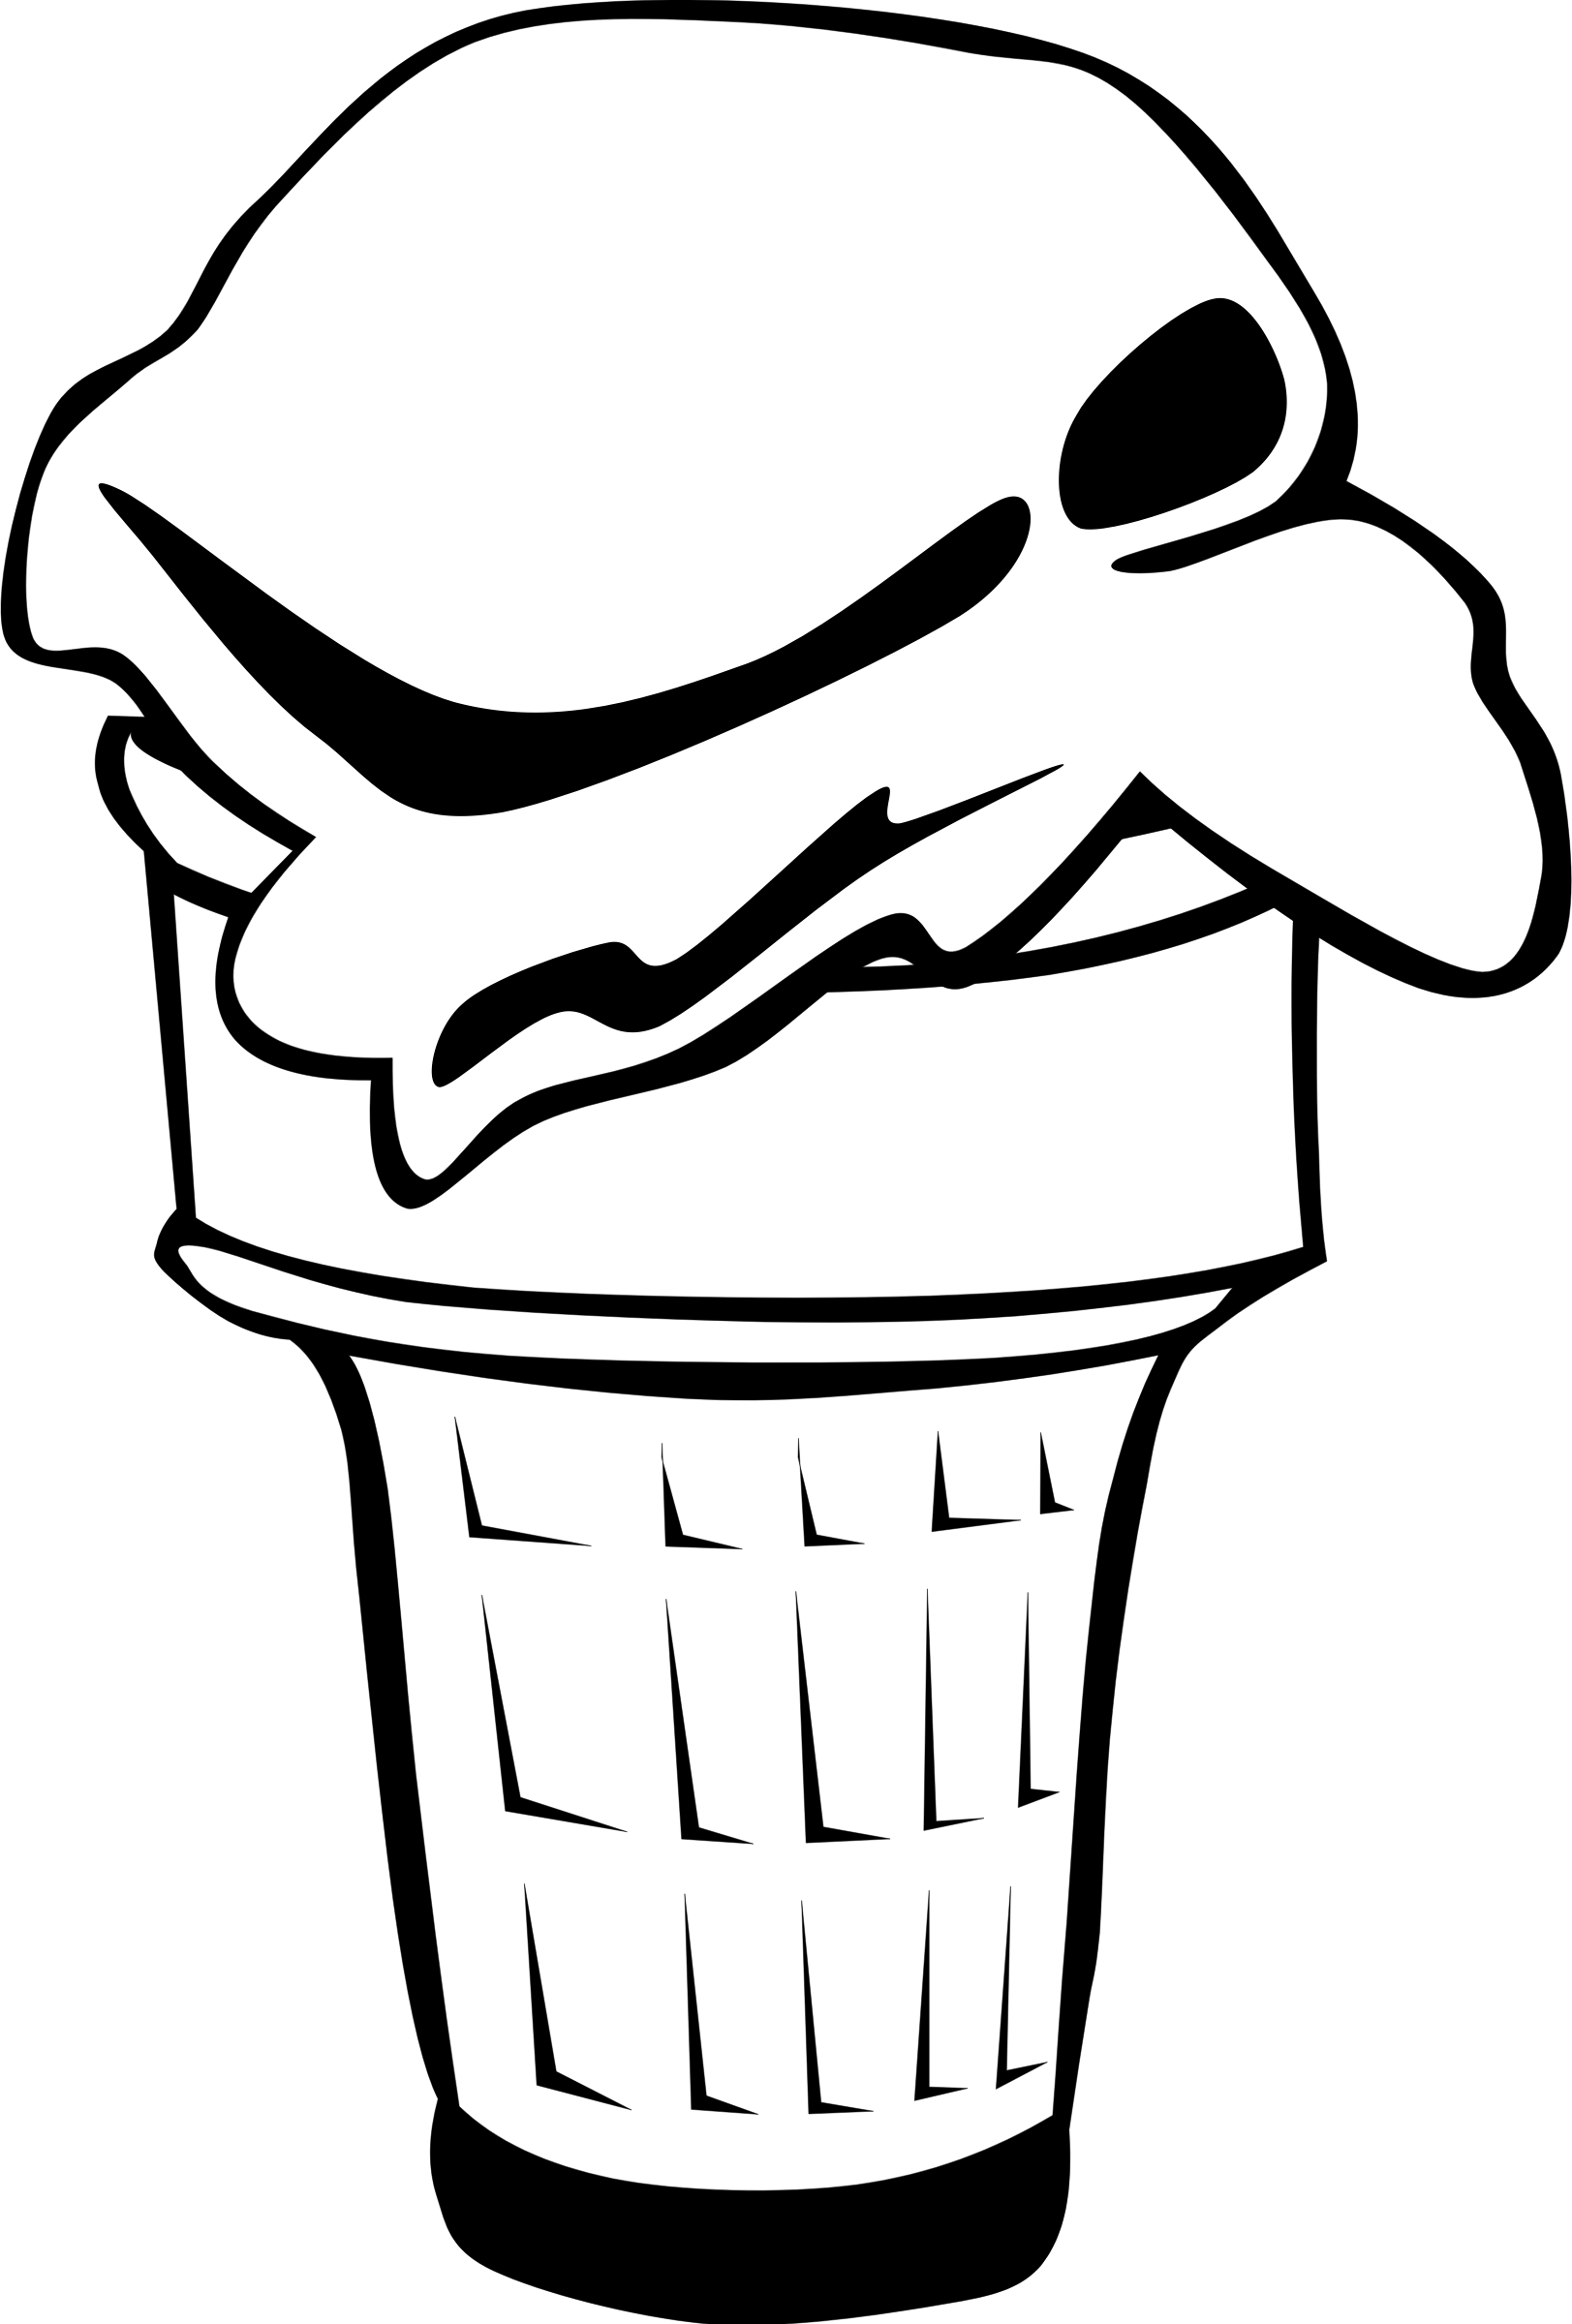 Desserts drawing. Png library stock